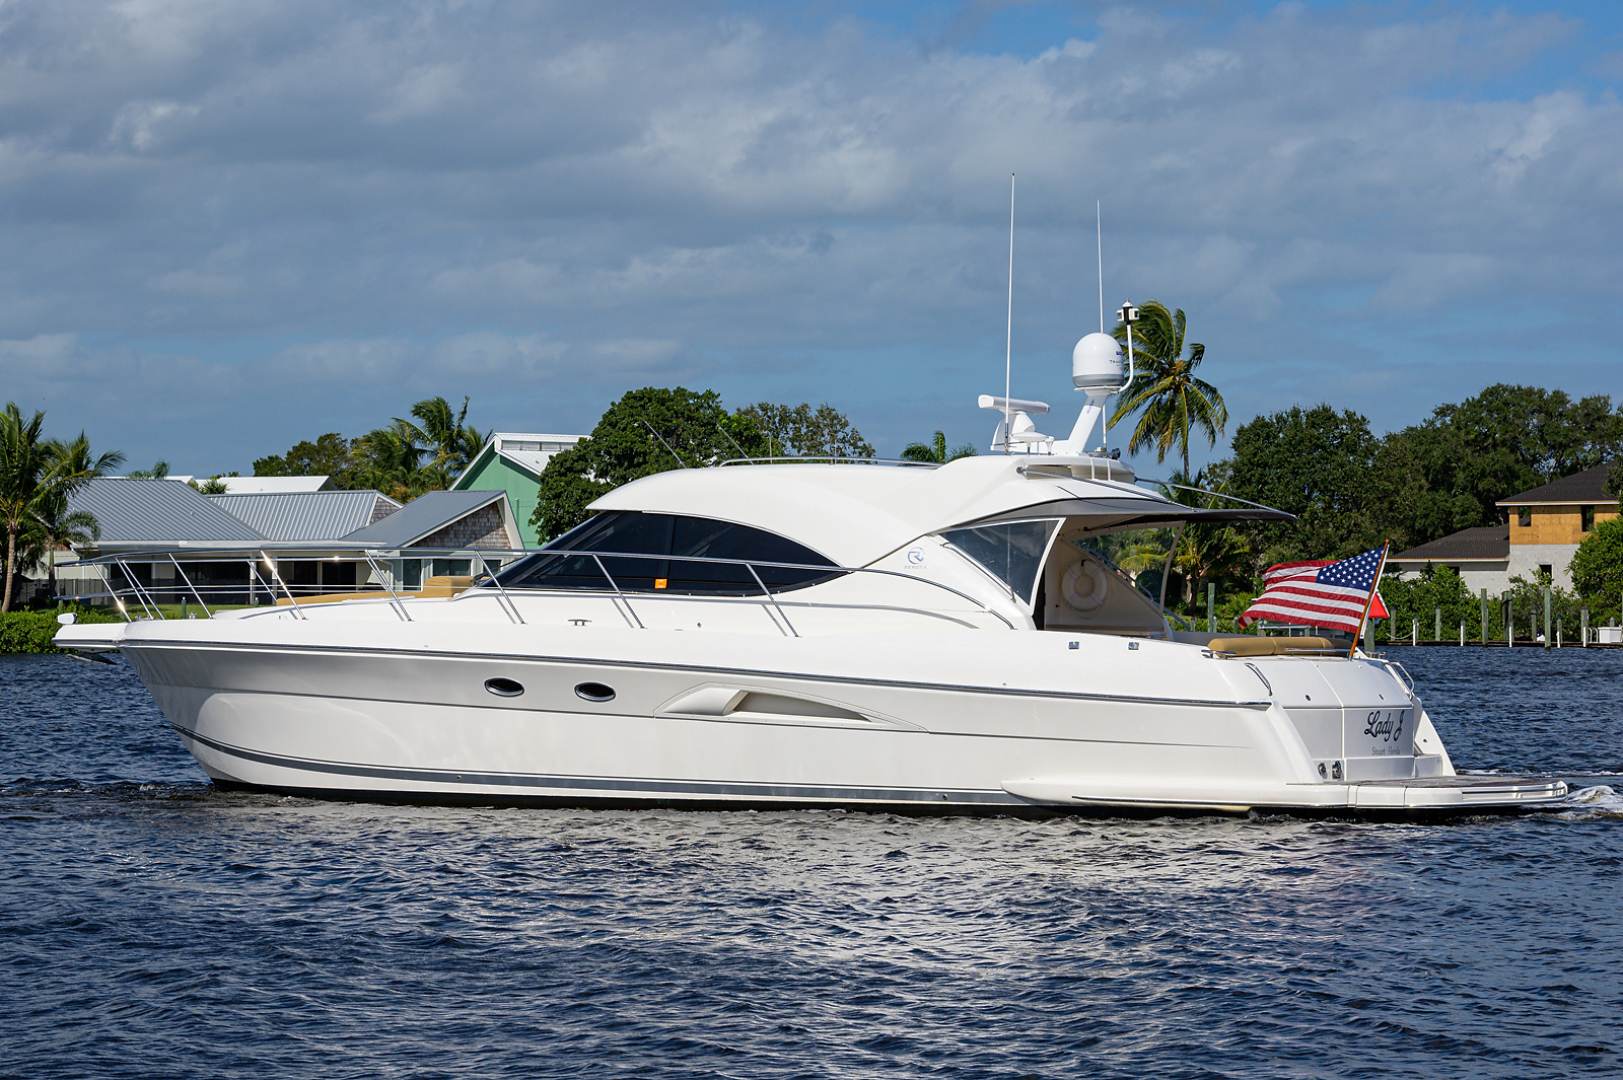 Riviera-5000 Sport Yacht 2012-Lady J Palm Beach-Florida-United States-1553490 | Thumbnail